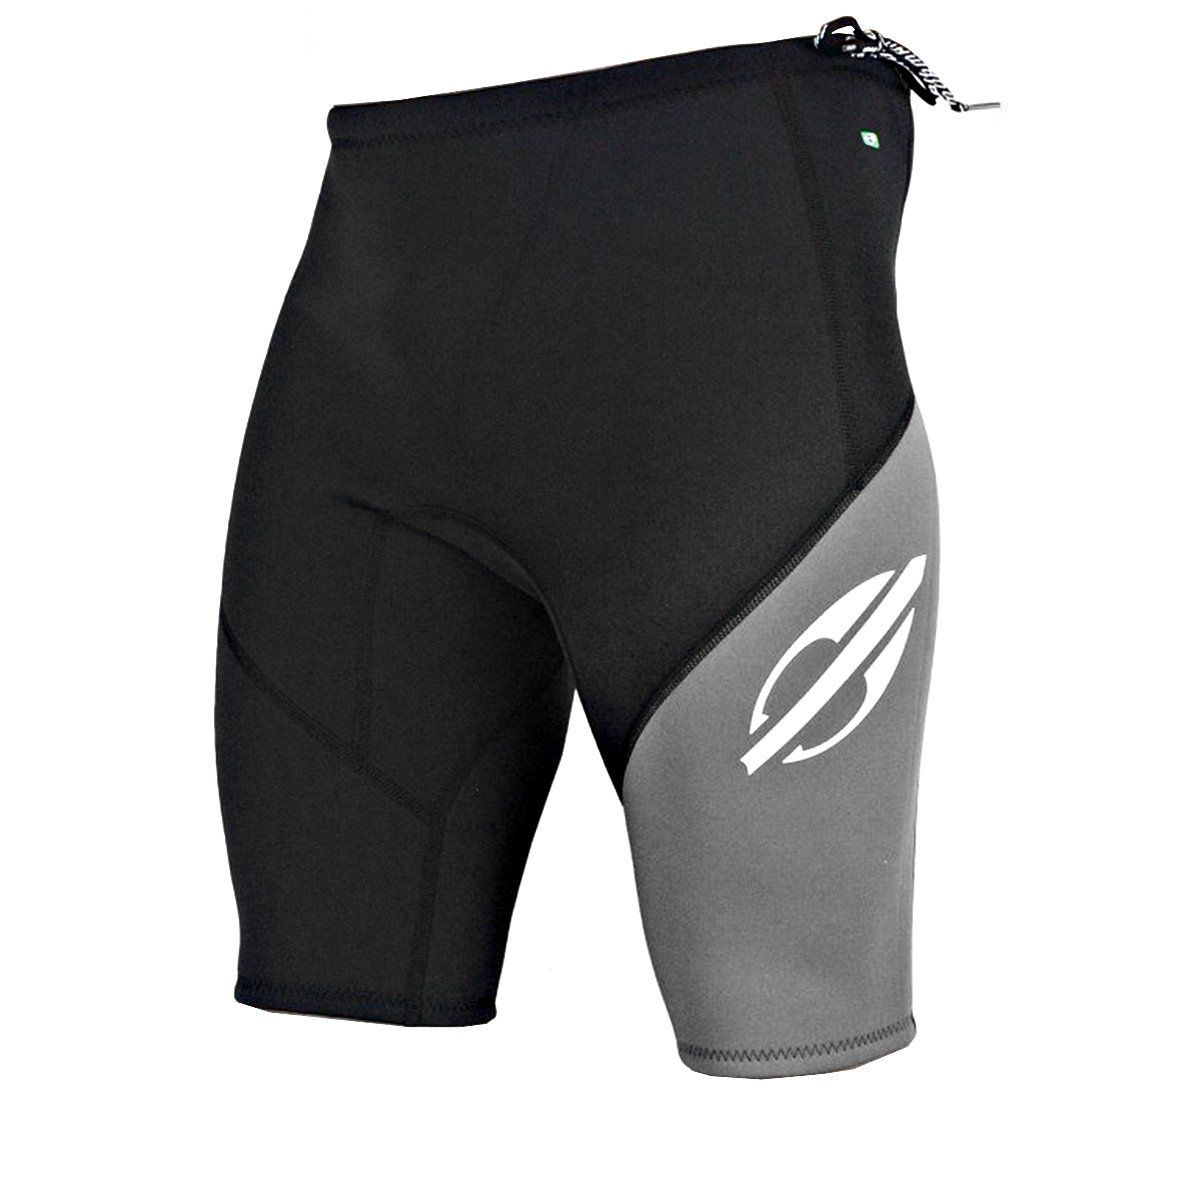 Bermuda/Shorts Neoprene Mormaii 1.5 mm Gromm 2